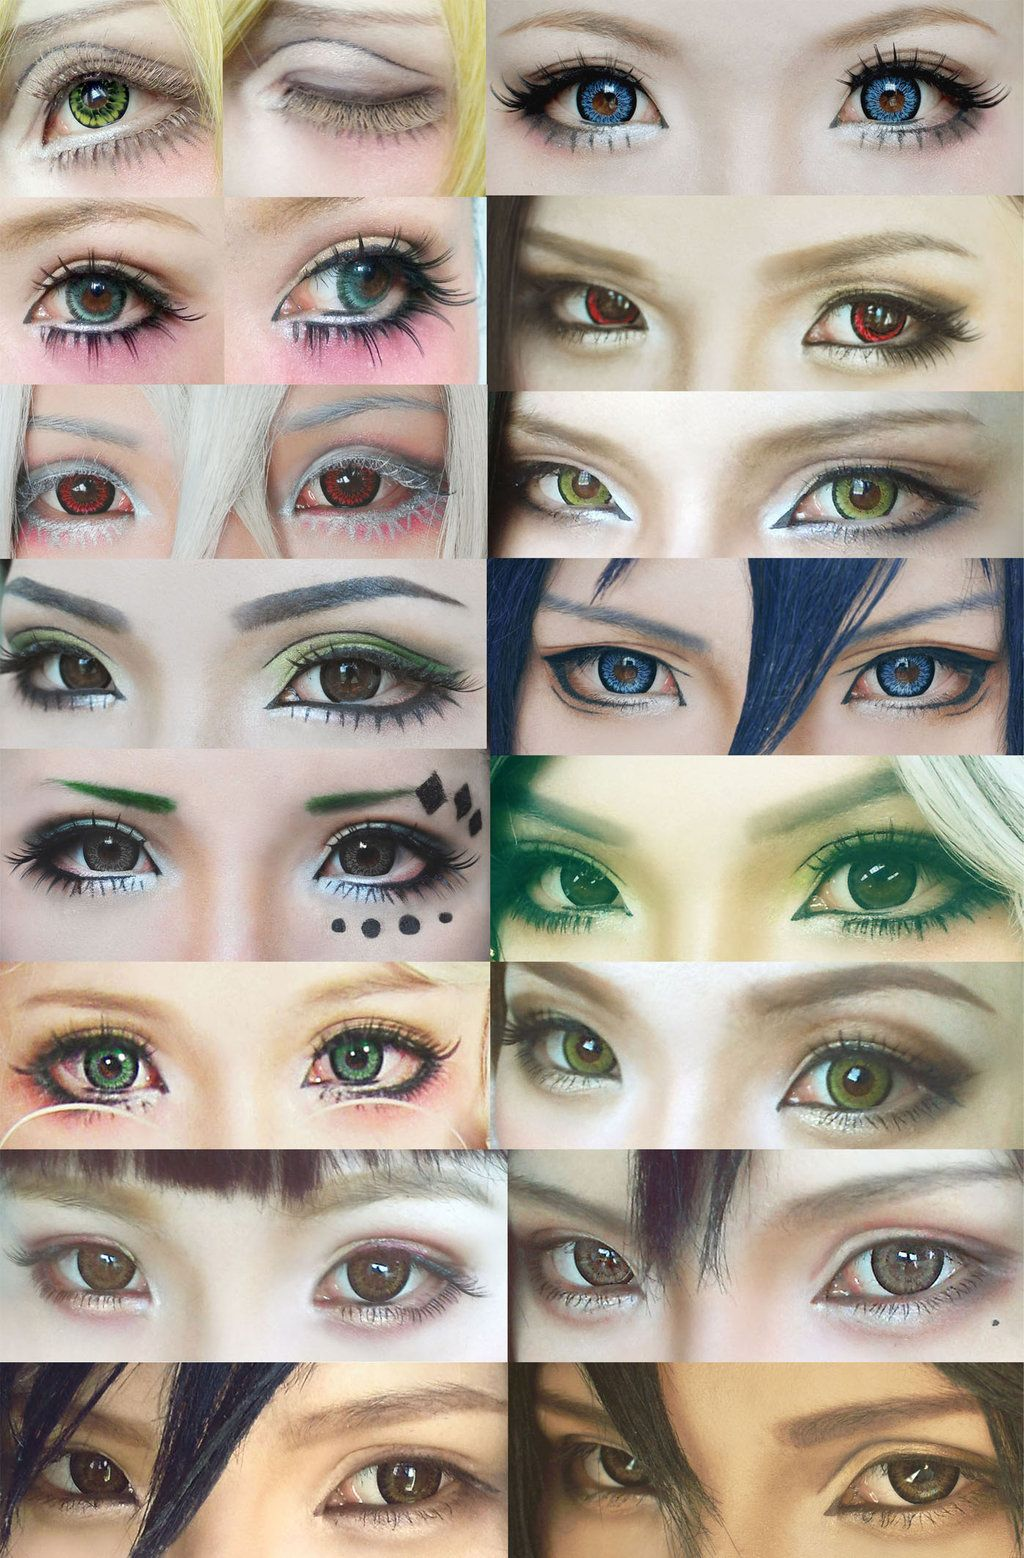 Cosplay Eyes Make Up Collection 4 By Mollyeberwein On Deviantart Anime Eye Makeup Anime Cosplay Makeup Anime Makeup